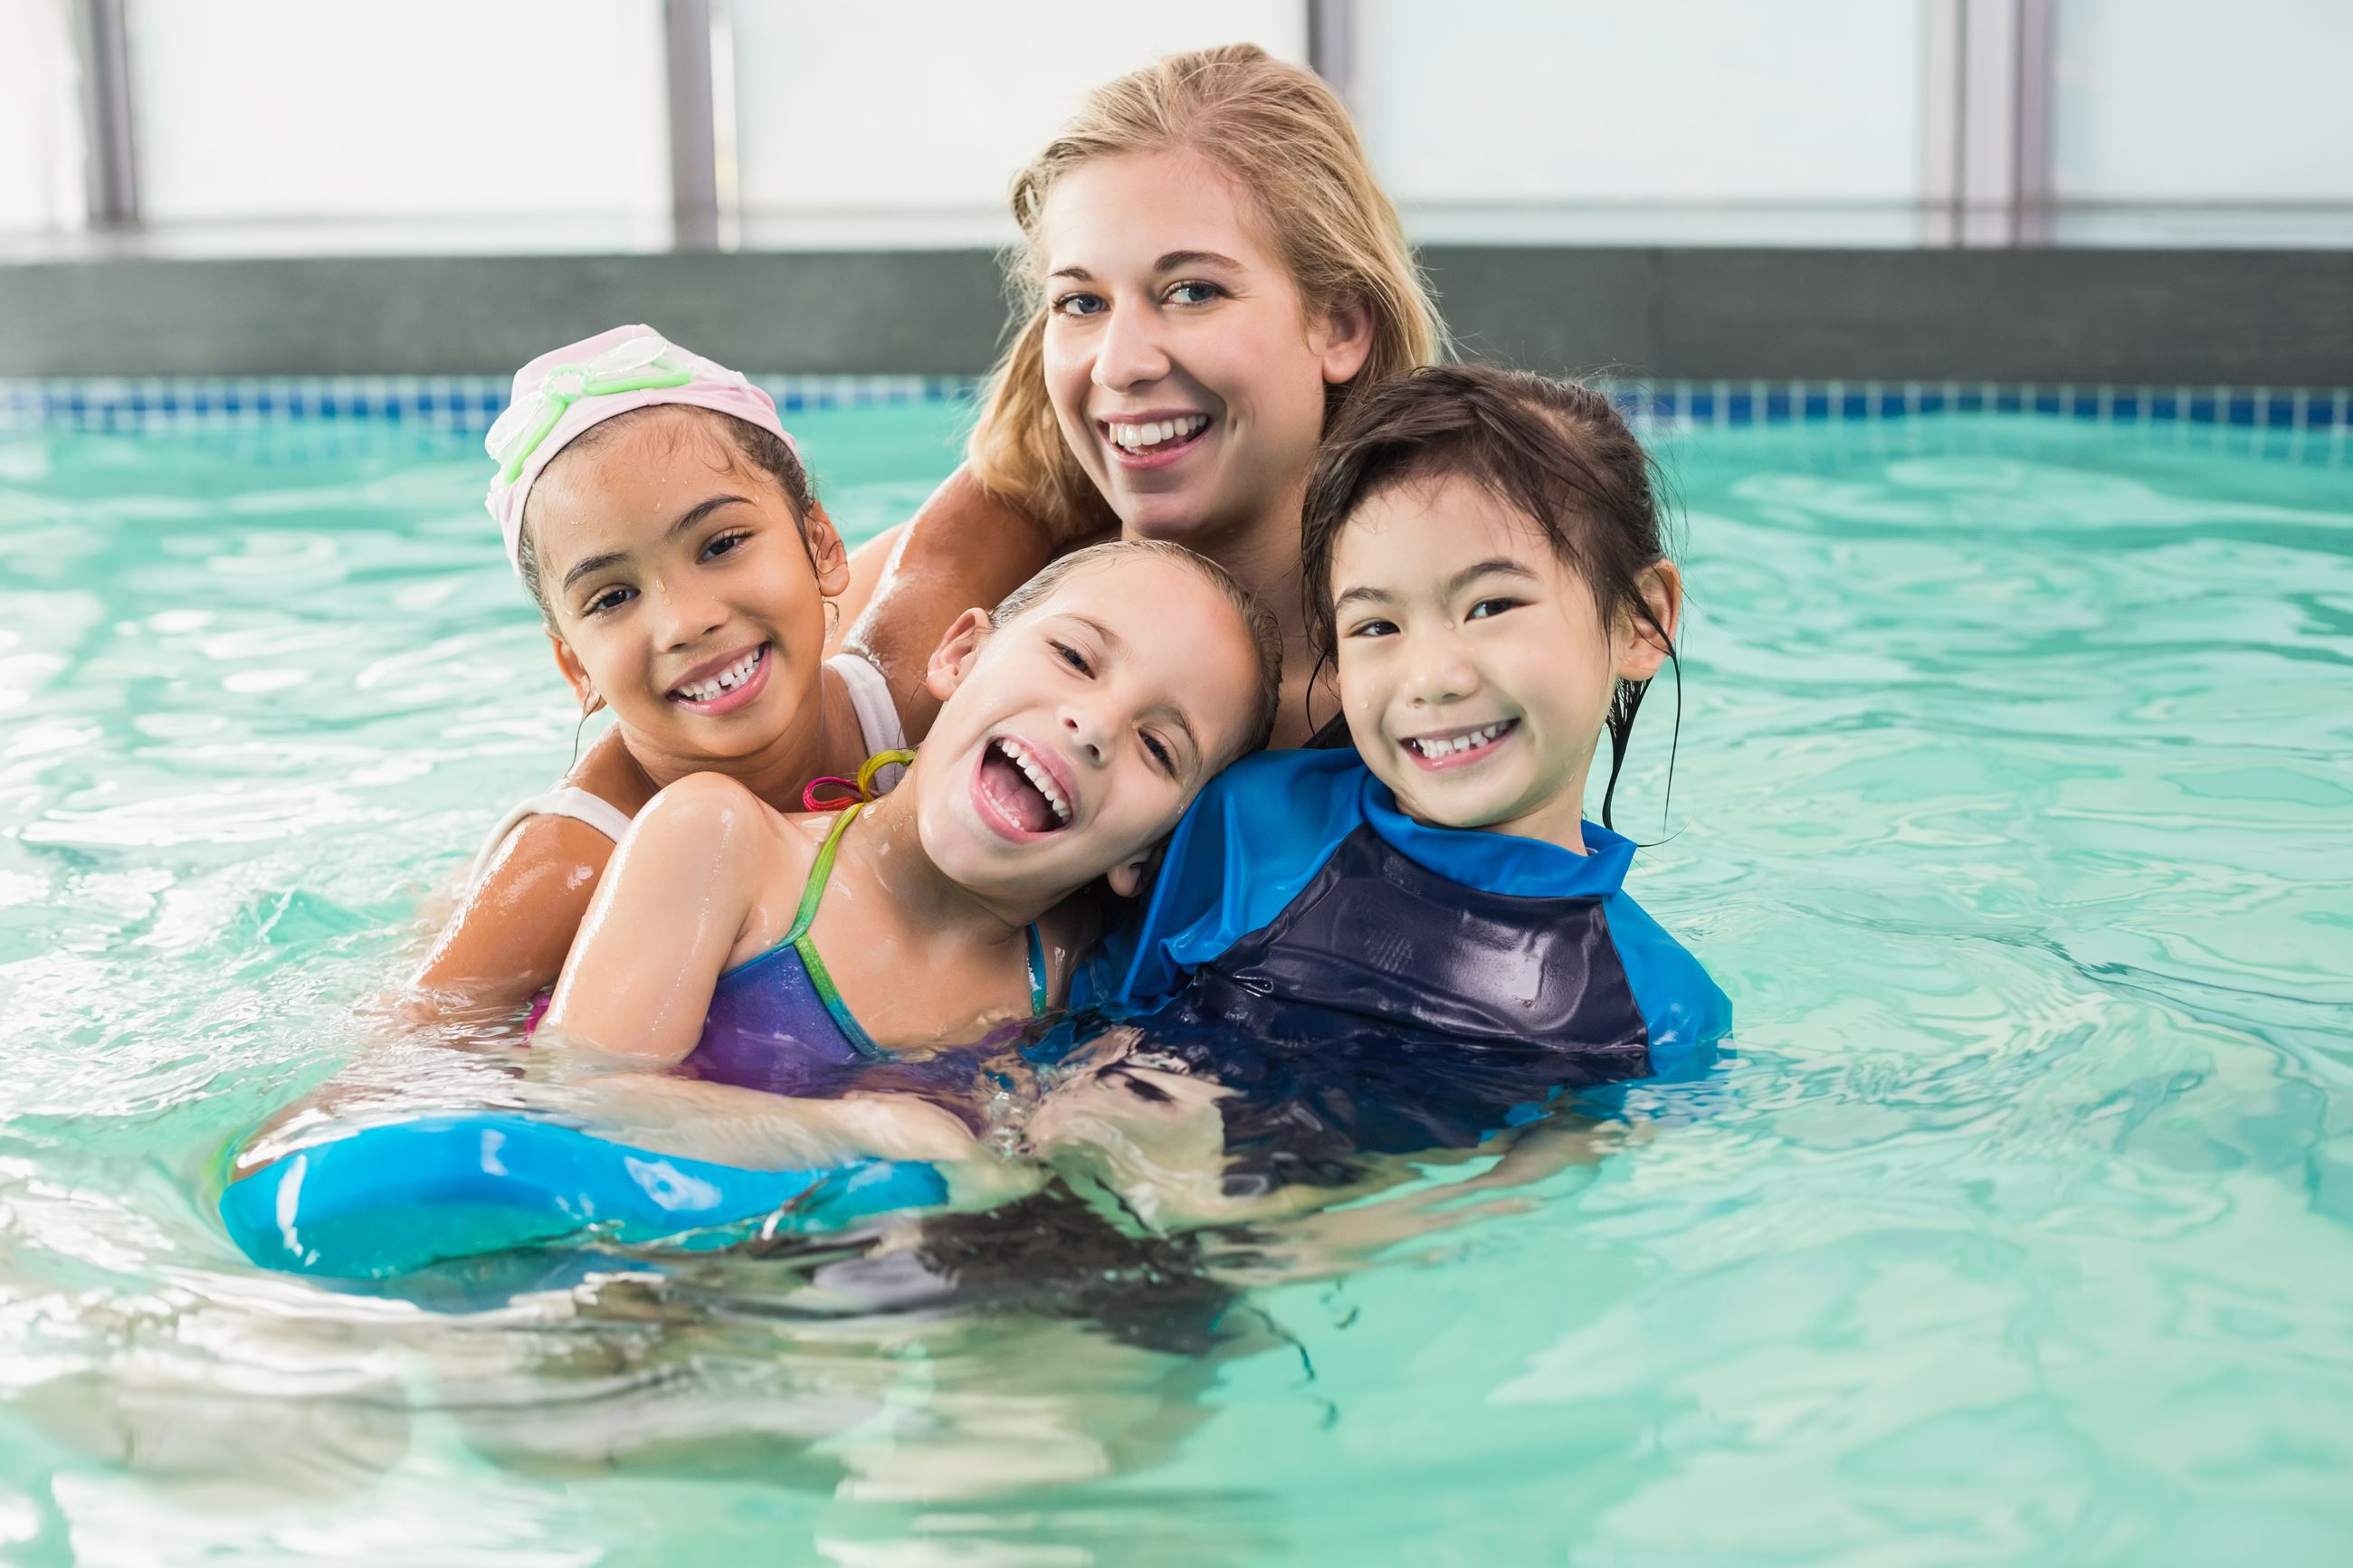 Swimming instructor and kids in pool for swim lessons